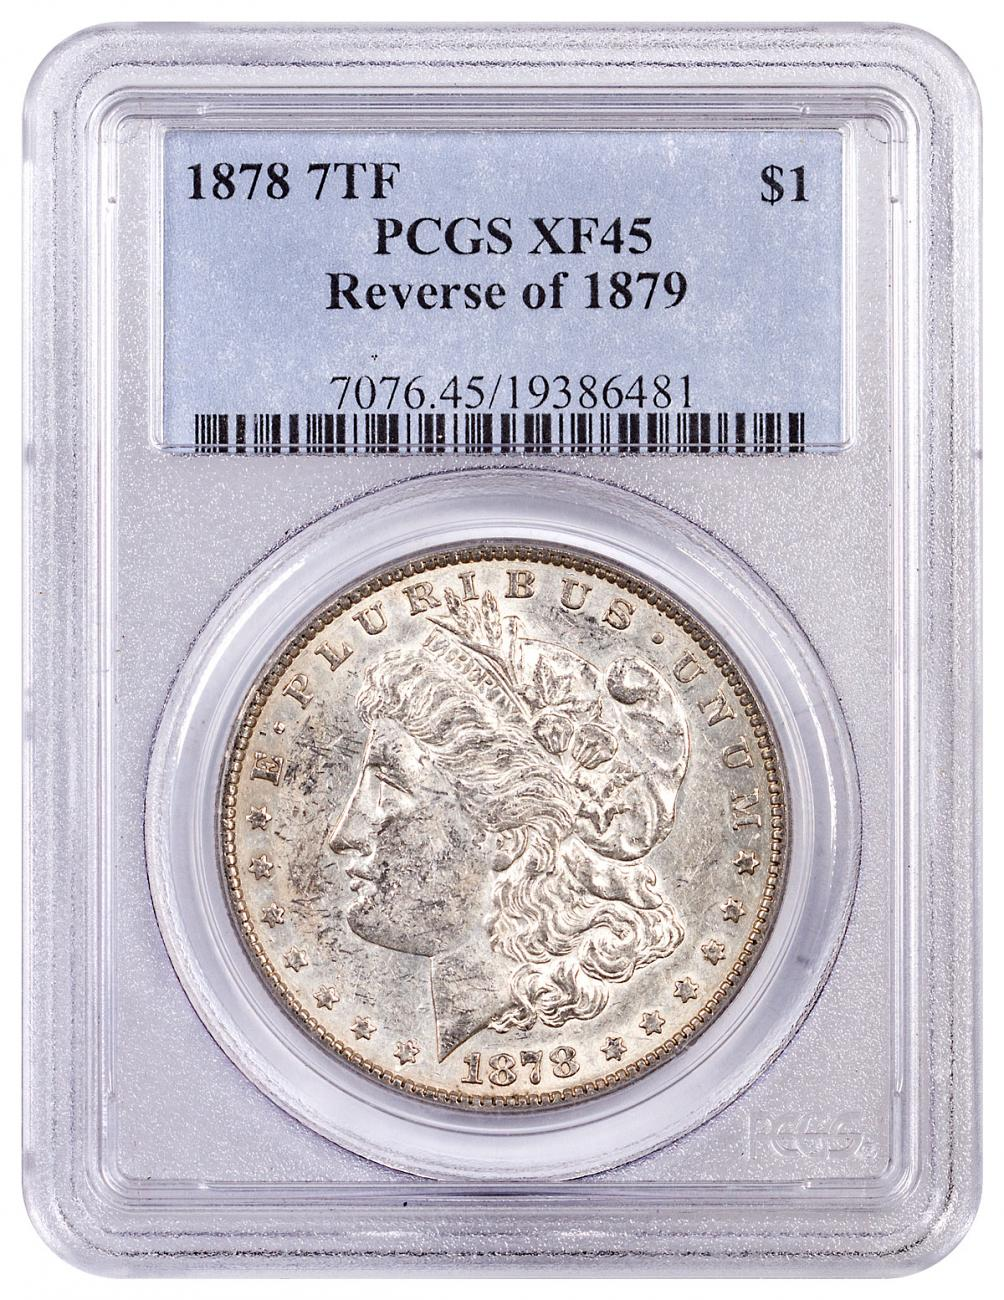 1878 Silver Morgan Dollar 7 Tail Feathers Reverse 79 PCGS XF45